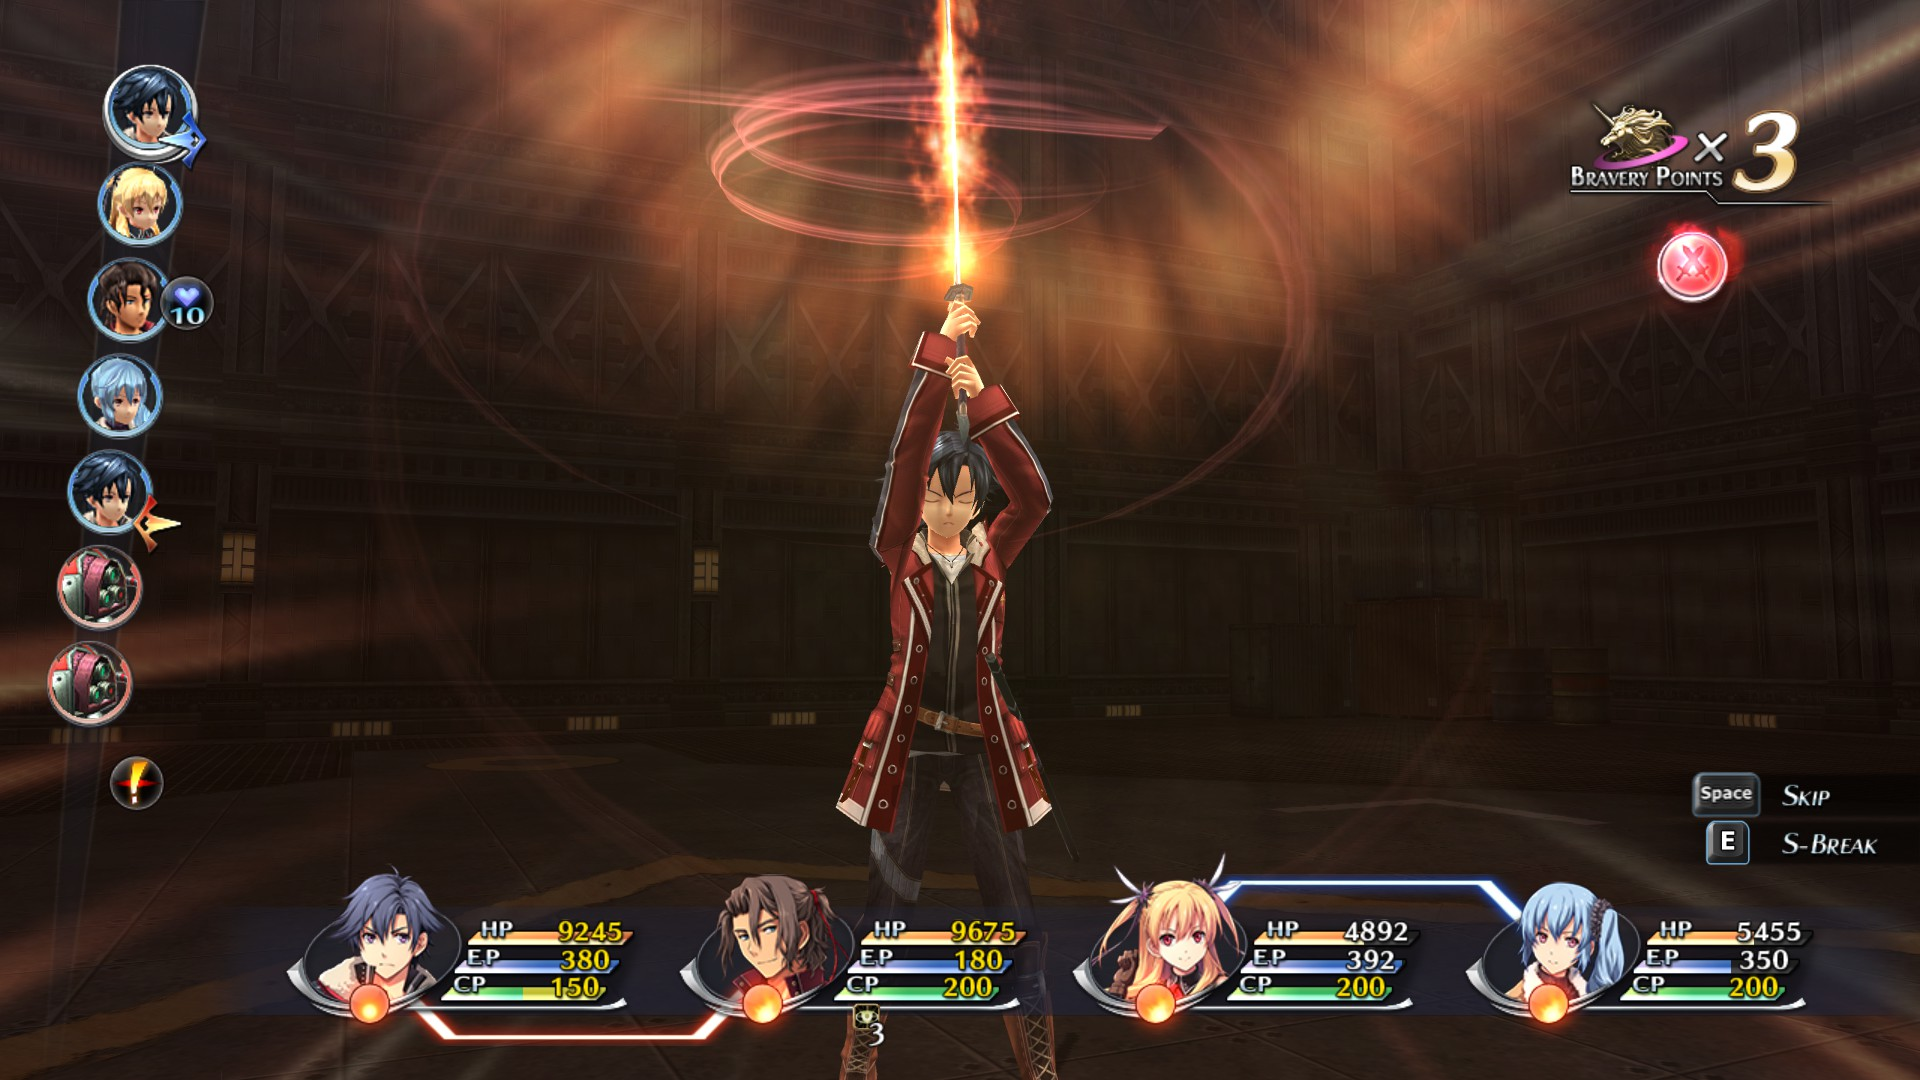 The-Legend-of-Heroes-Trails-of-Cold-steel-II-Screenshot-04.jpg